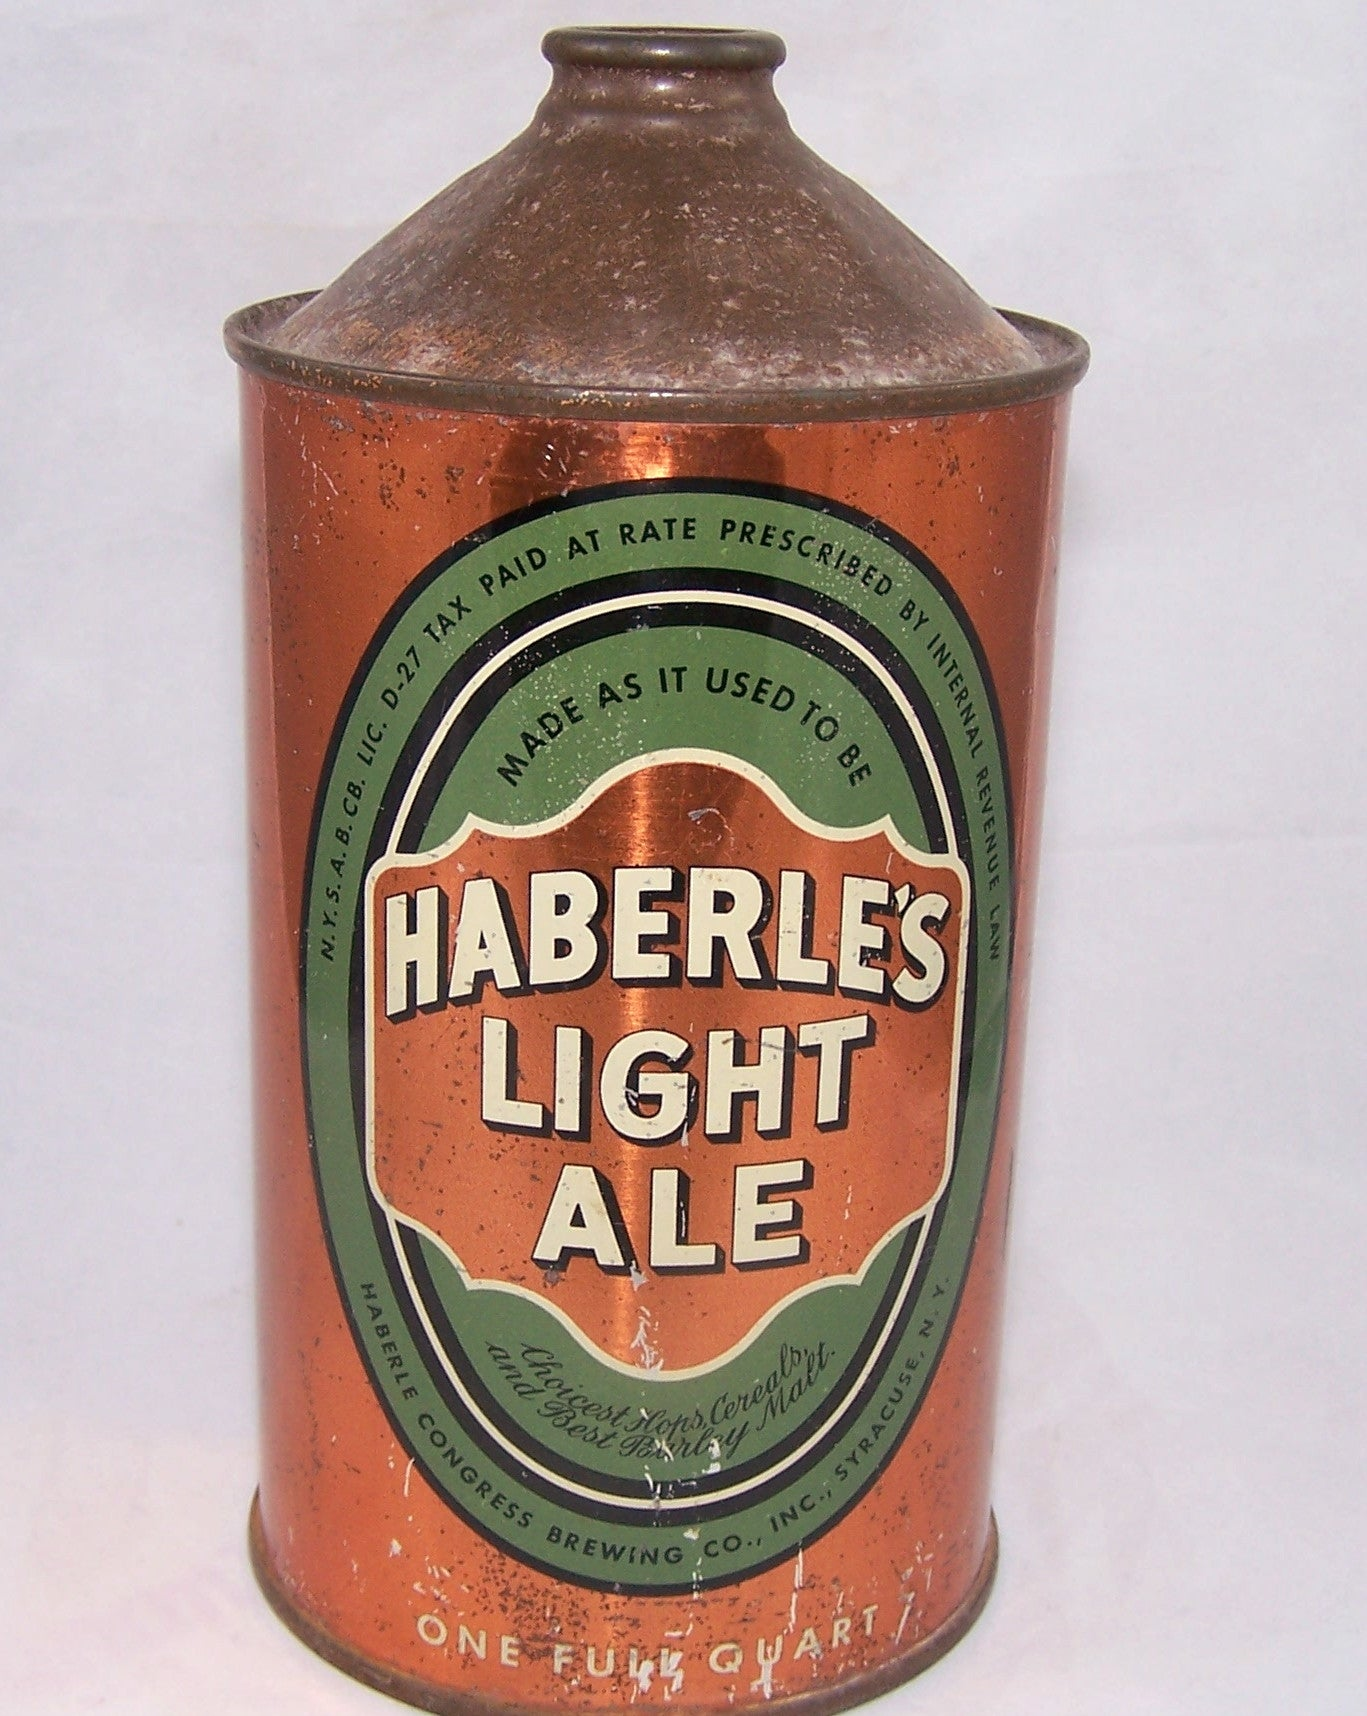 Haberle's Light Ale, USBC 211-12, Grade 1- Sold on 05/24/16